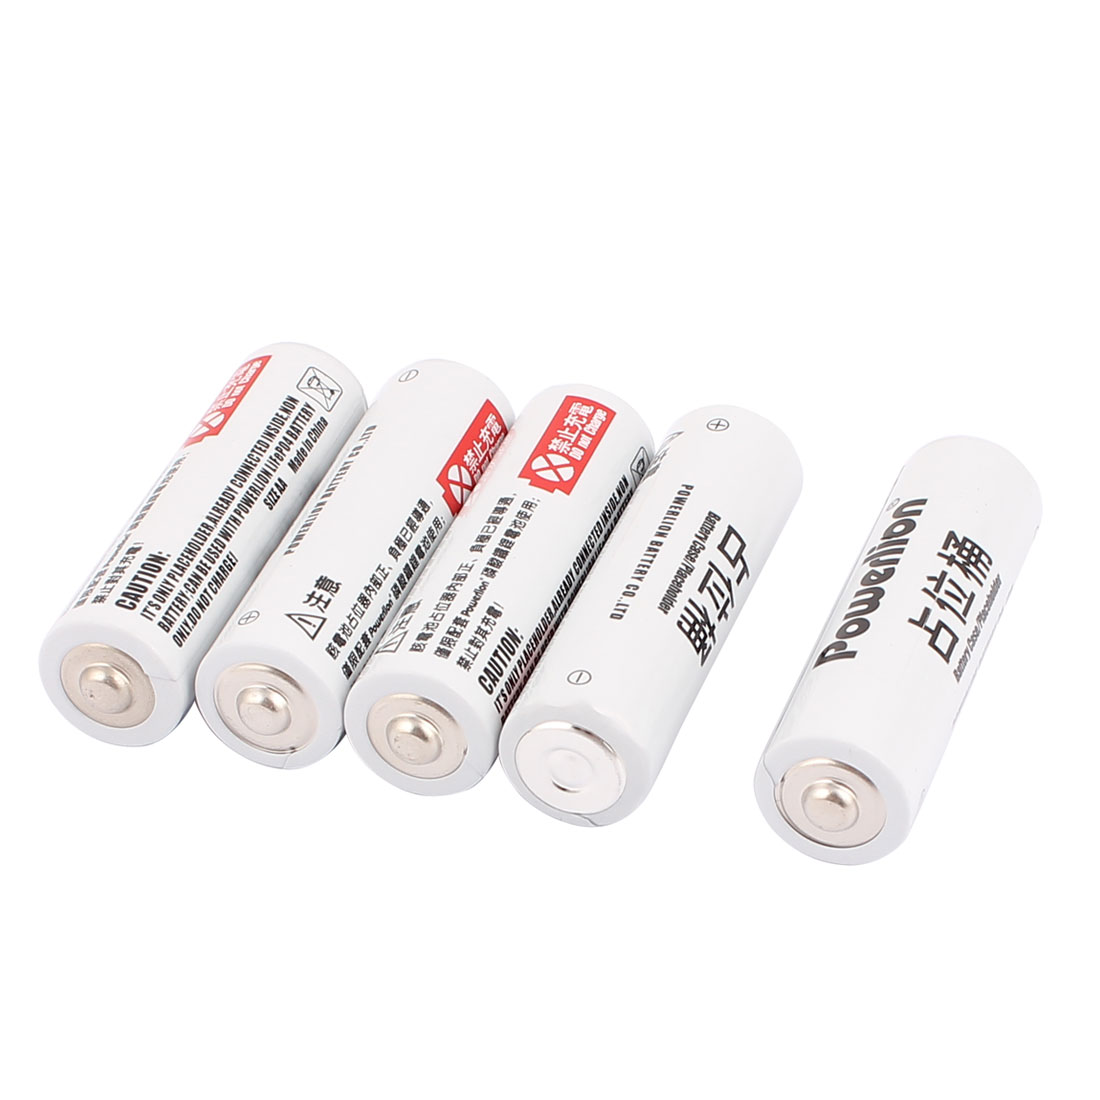 5 Pcs AA Size 14500 Reduce Voltage Placeholder Battery Occupied Spacer Unit For Lifepo4 Batteries